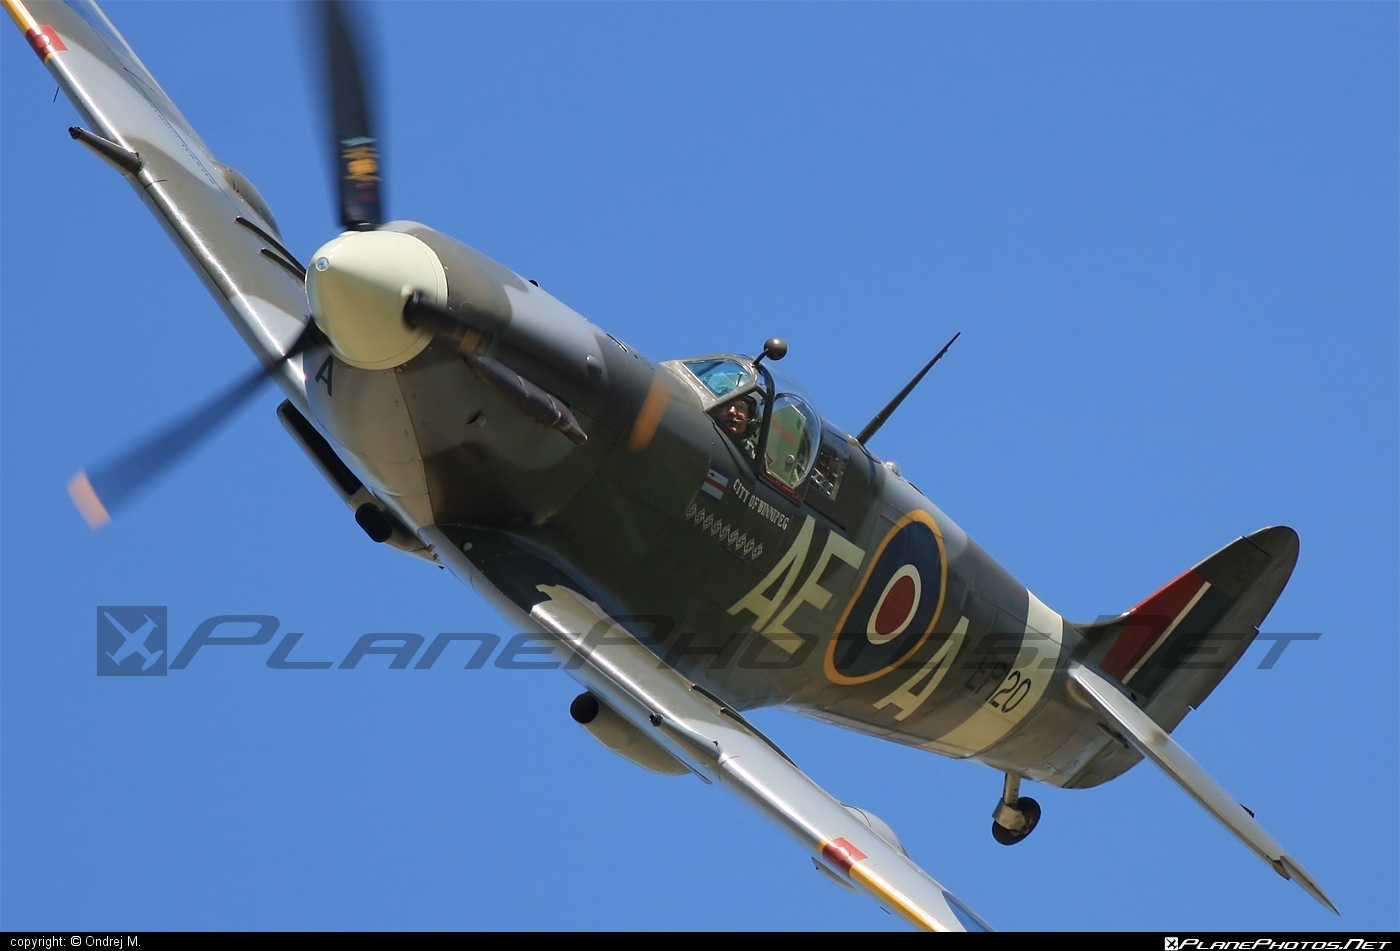 supermarine spitfire jetfire - photo #33